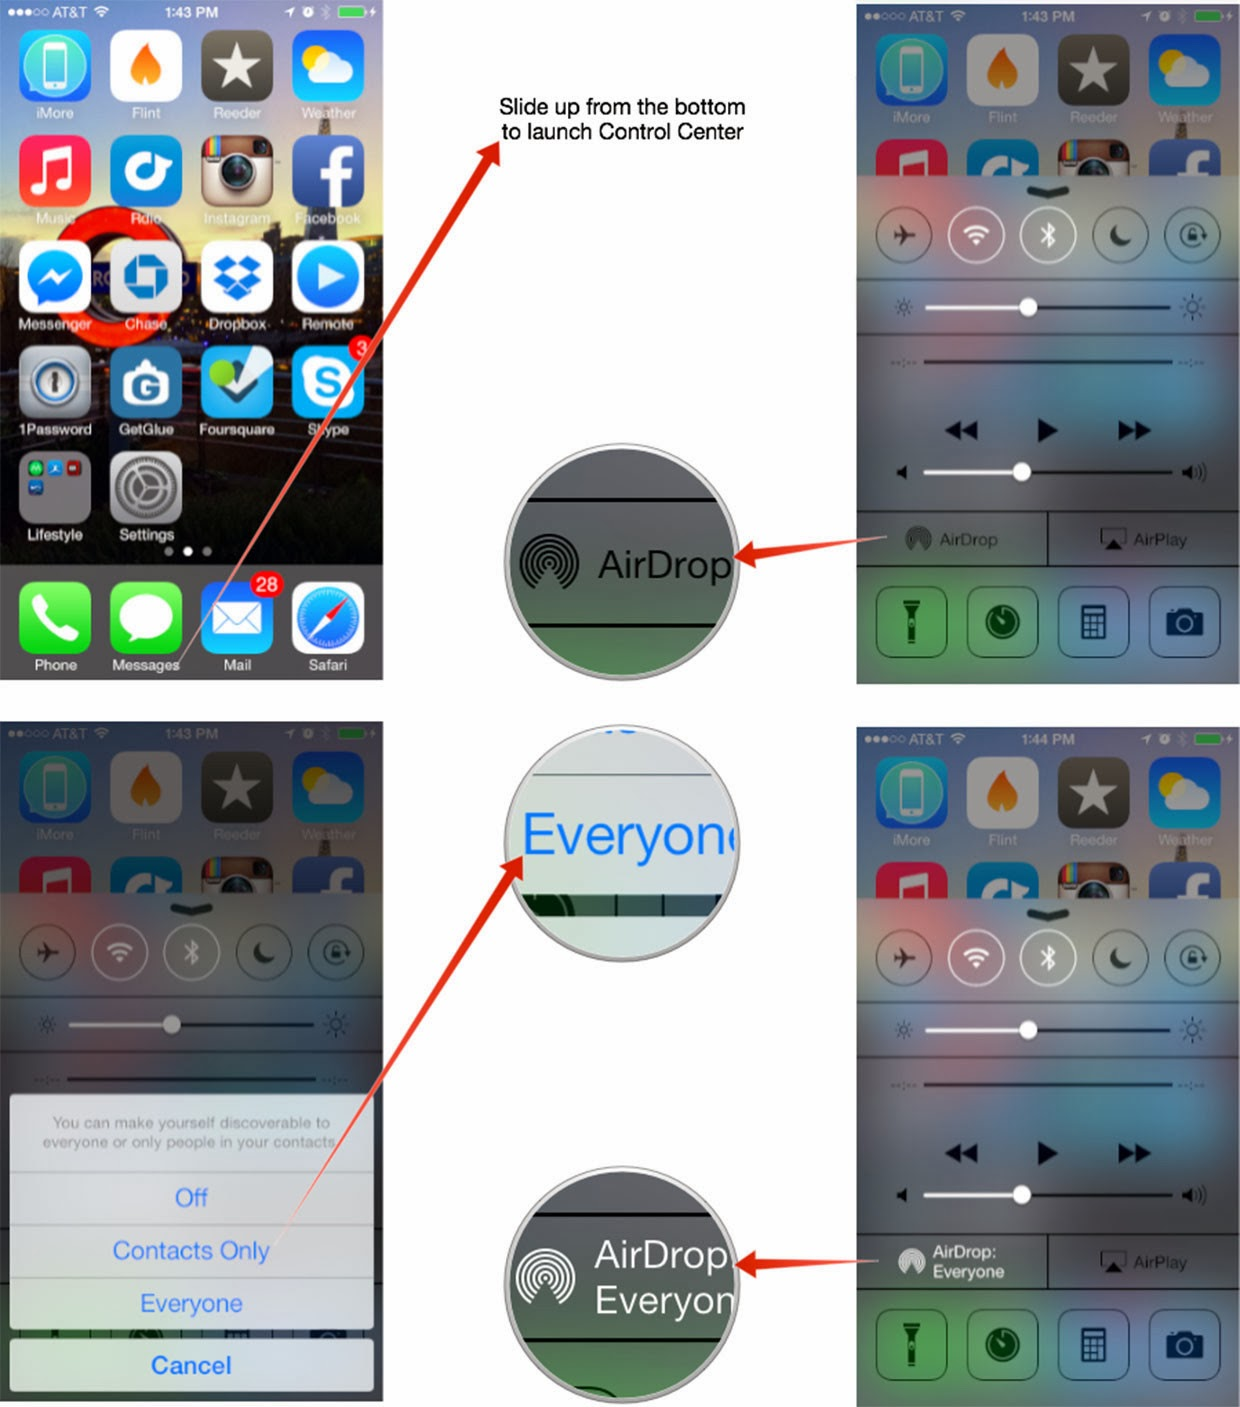 How to Use airdrop in ios7